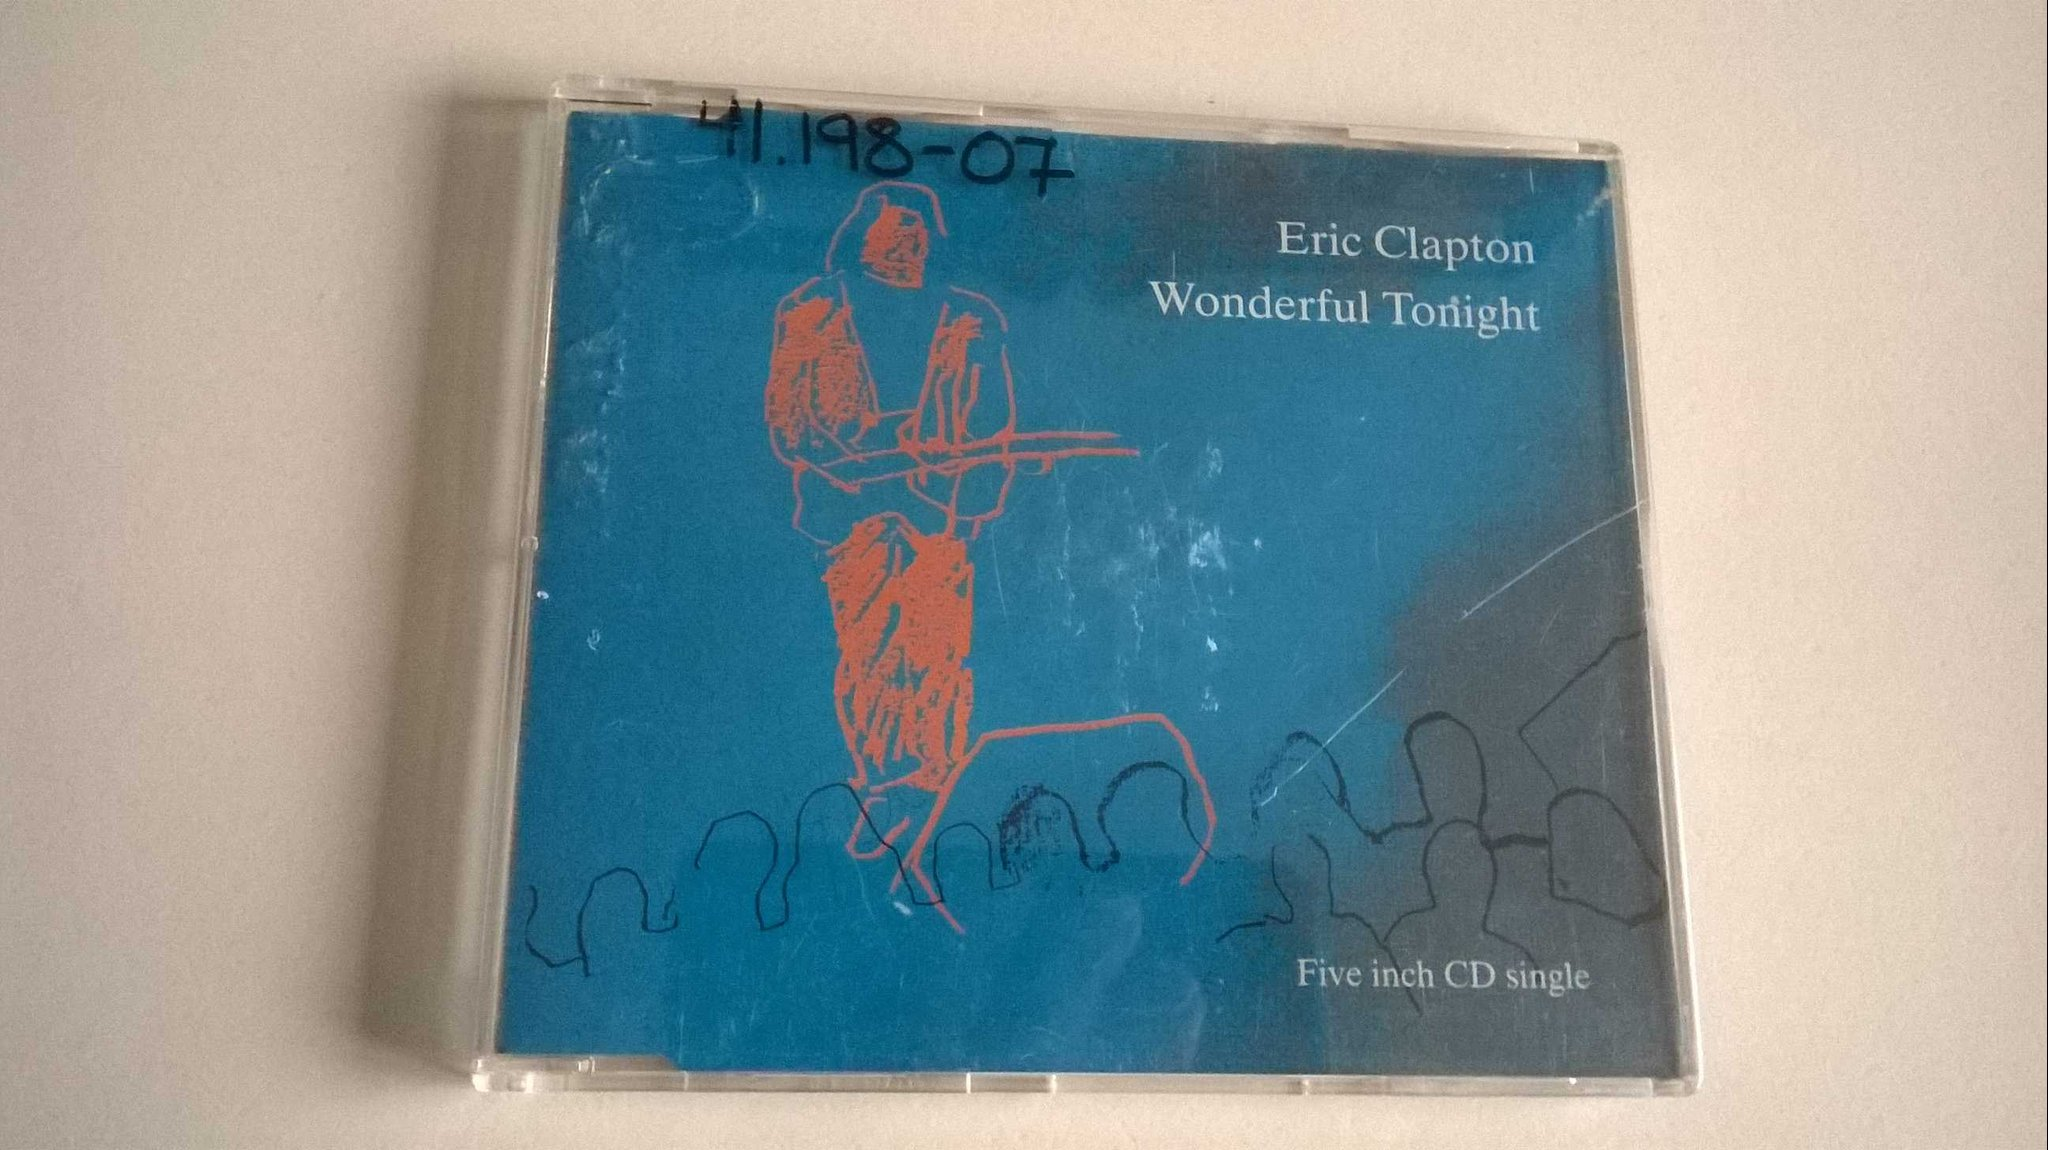 Eric Clapton- Wonderful Tonight, five inch cd single